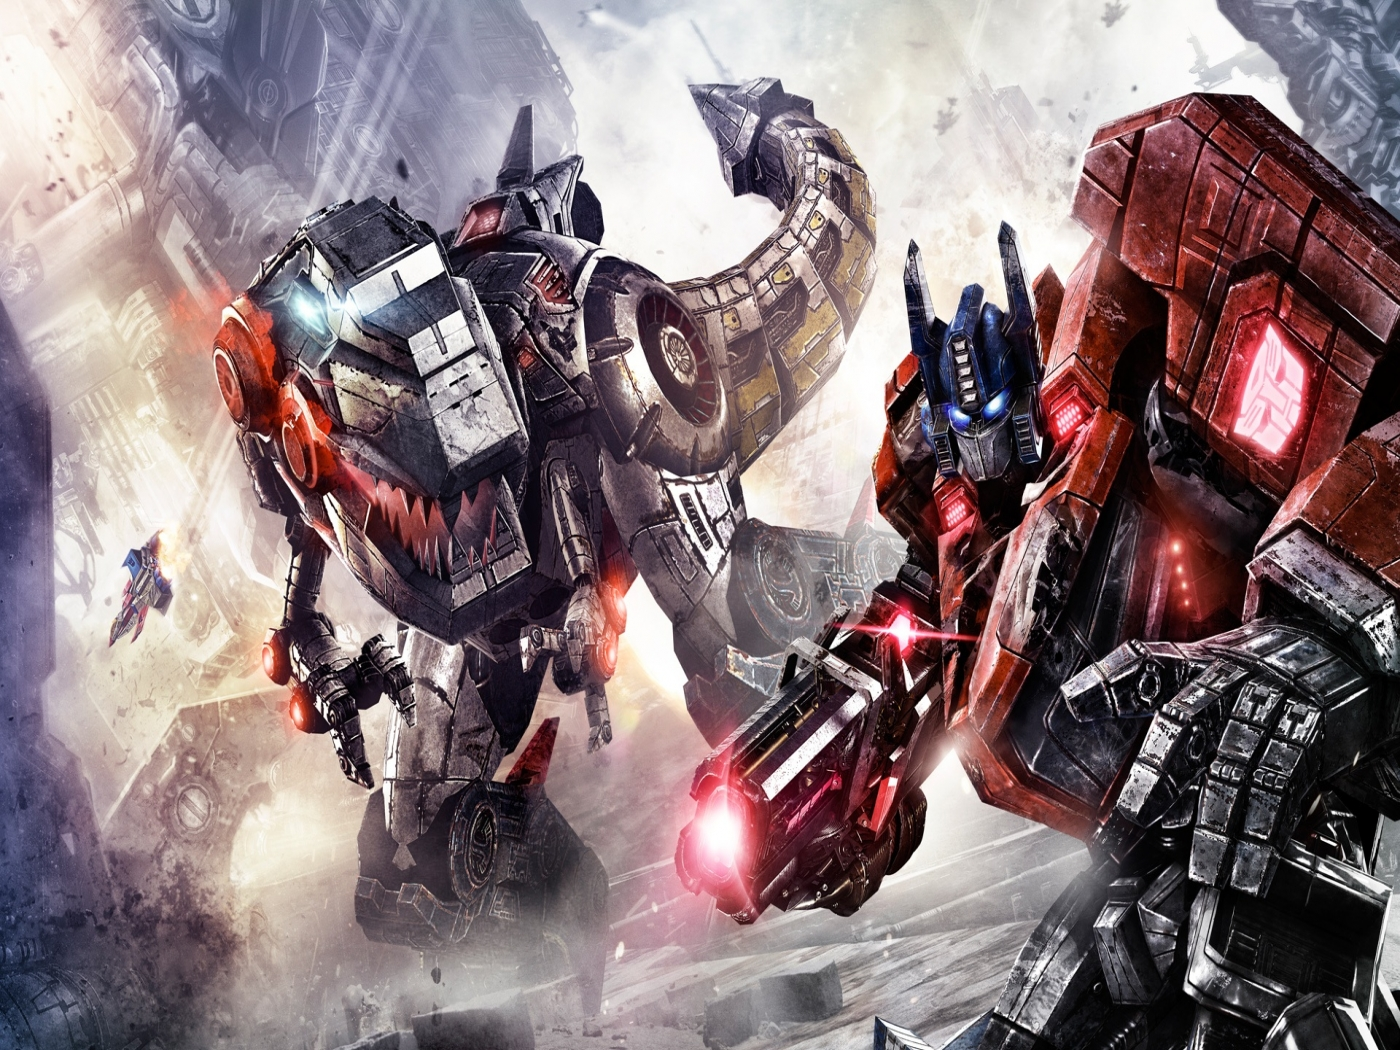 Games Wallpapers Transformers Fall Of Cybertron 5483 1920x1080 1400x1050